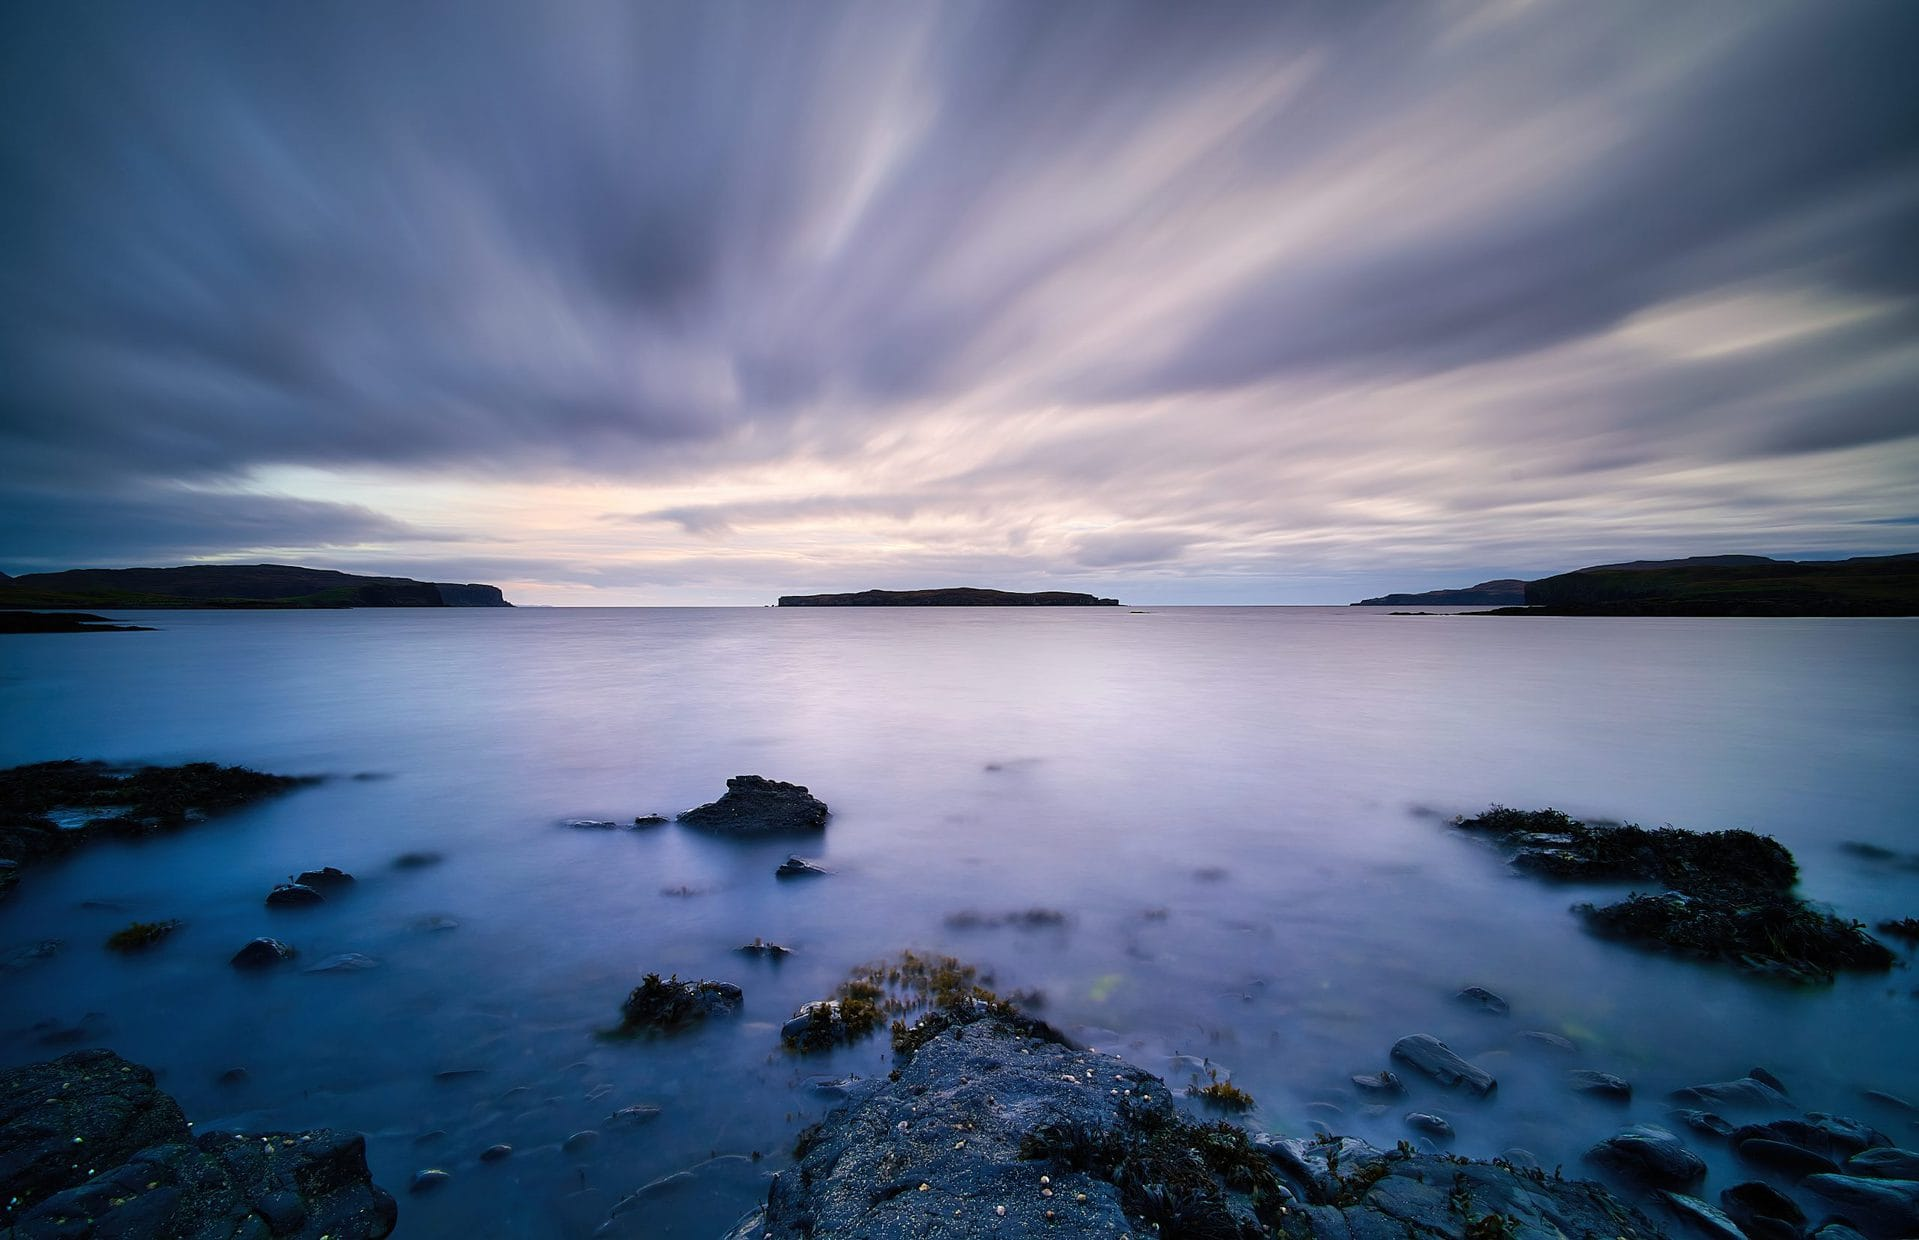 The last of the evening light. Eabost, Isle of Skye